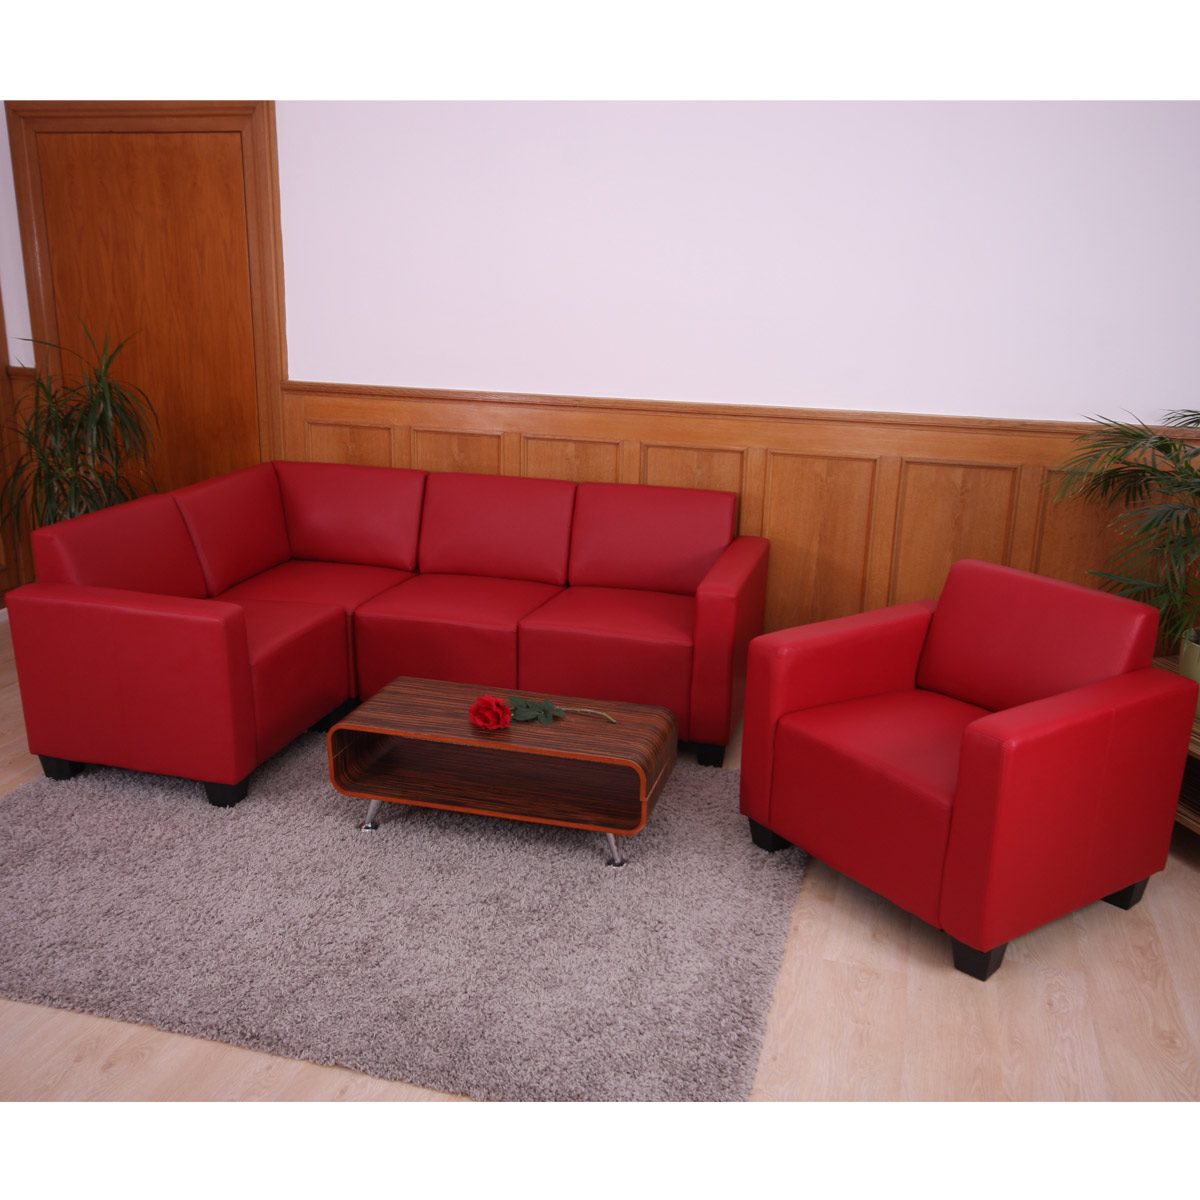 modular sofa system couch garnitur lyon 4 1 kunstleder rot. Black Bedroom Furniture Sets. Home Design Ideas